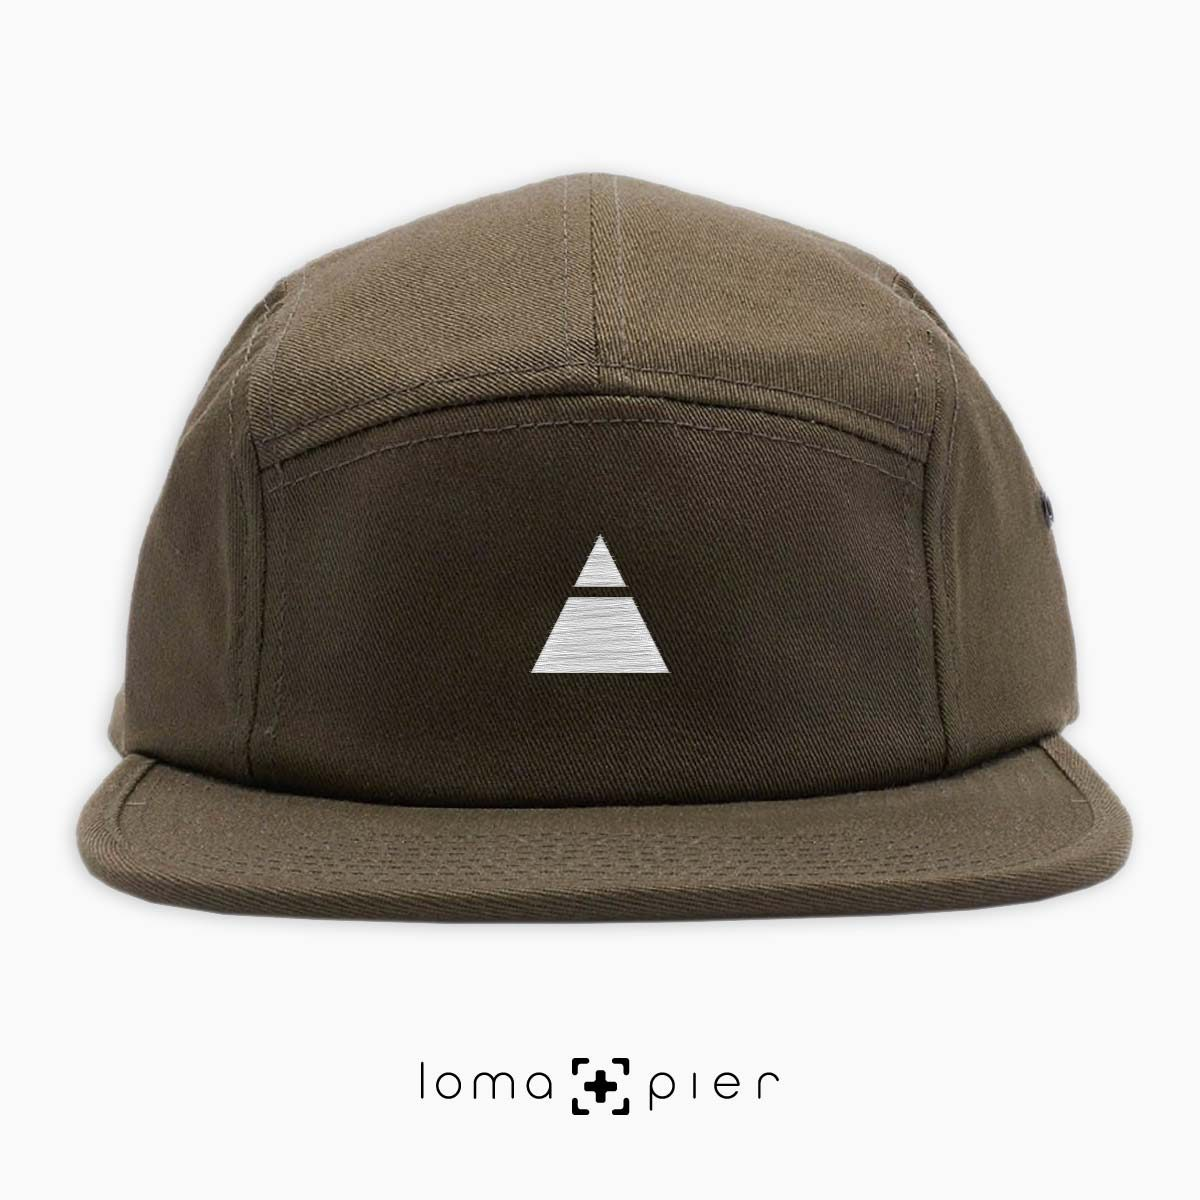 TRYANGLE icon embroidered on an olive green cotton 5-panel hat with white thread by loma+pier hat store